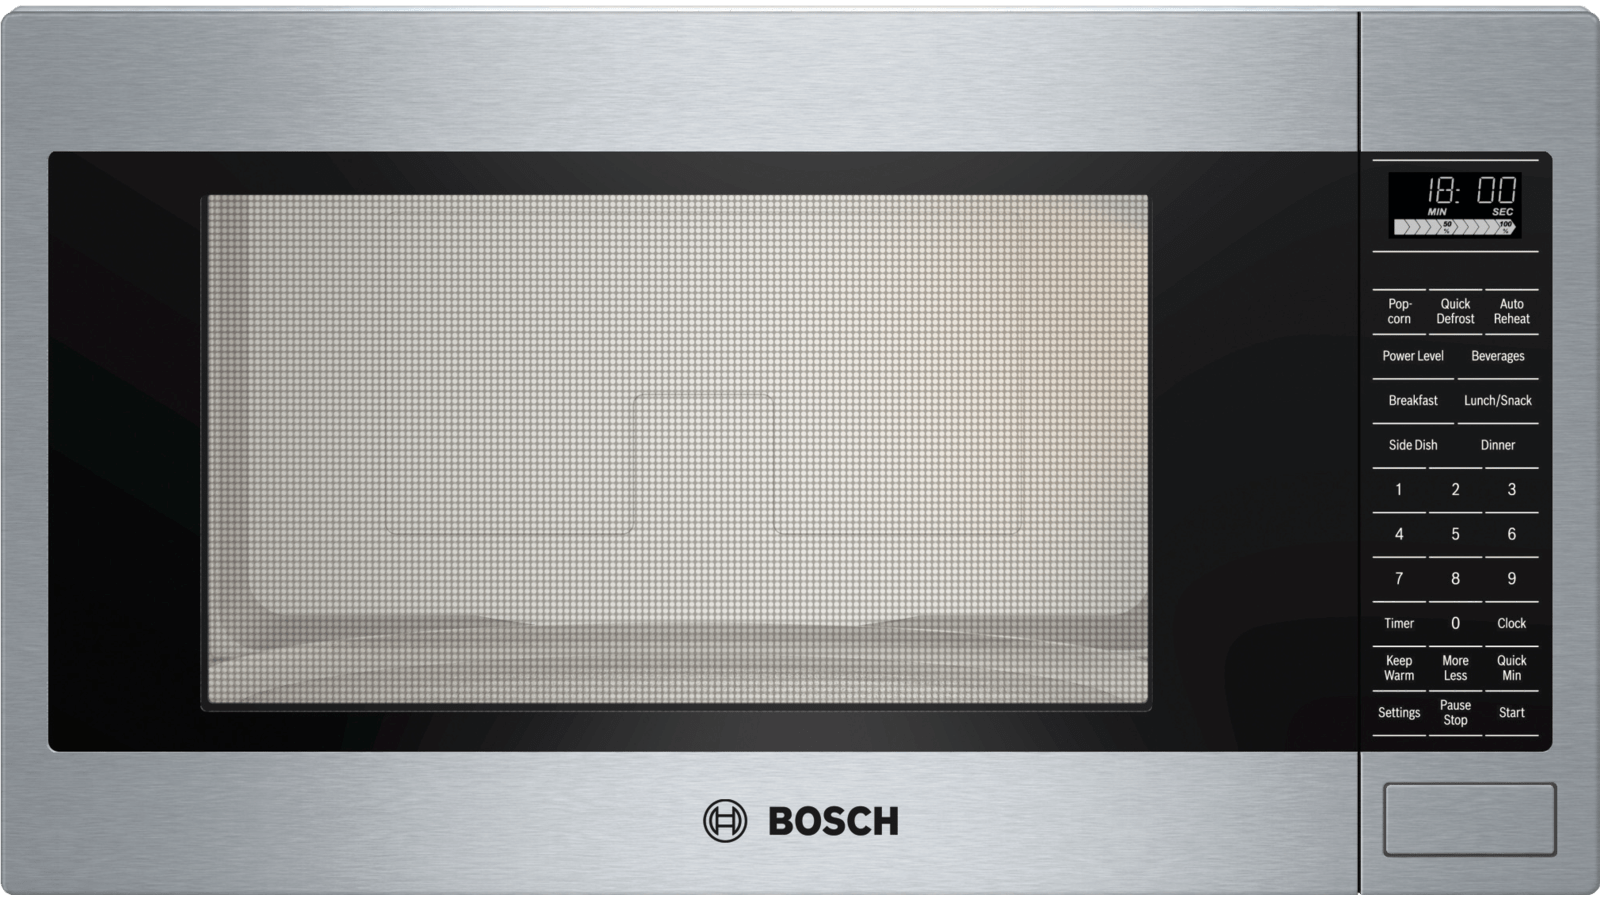 Bosch Hmb5051 Built In Microwave Oven